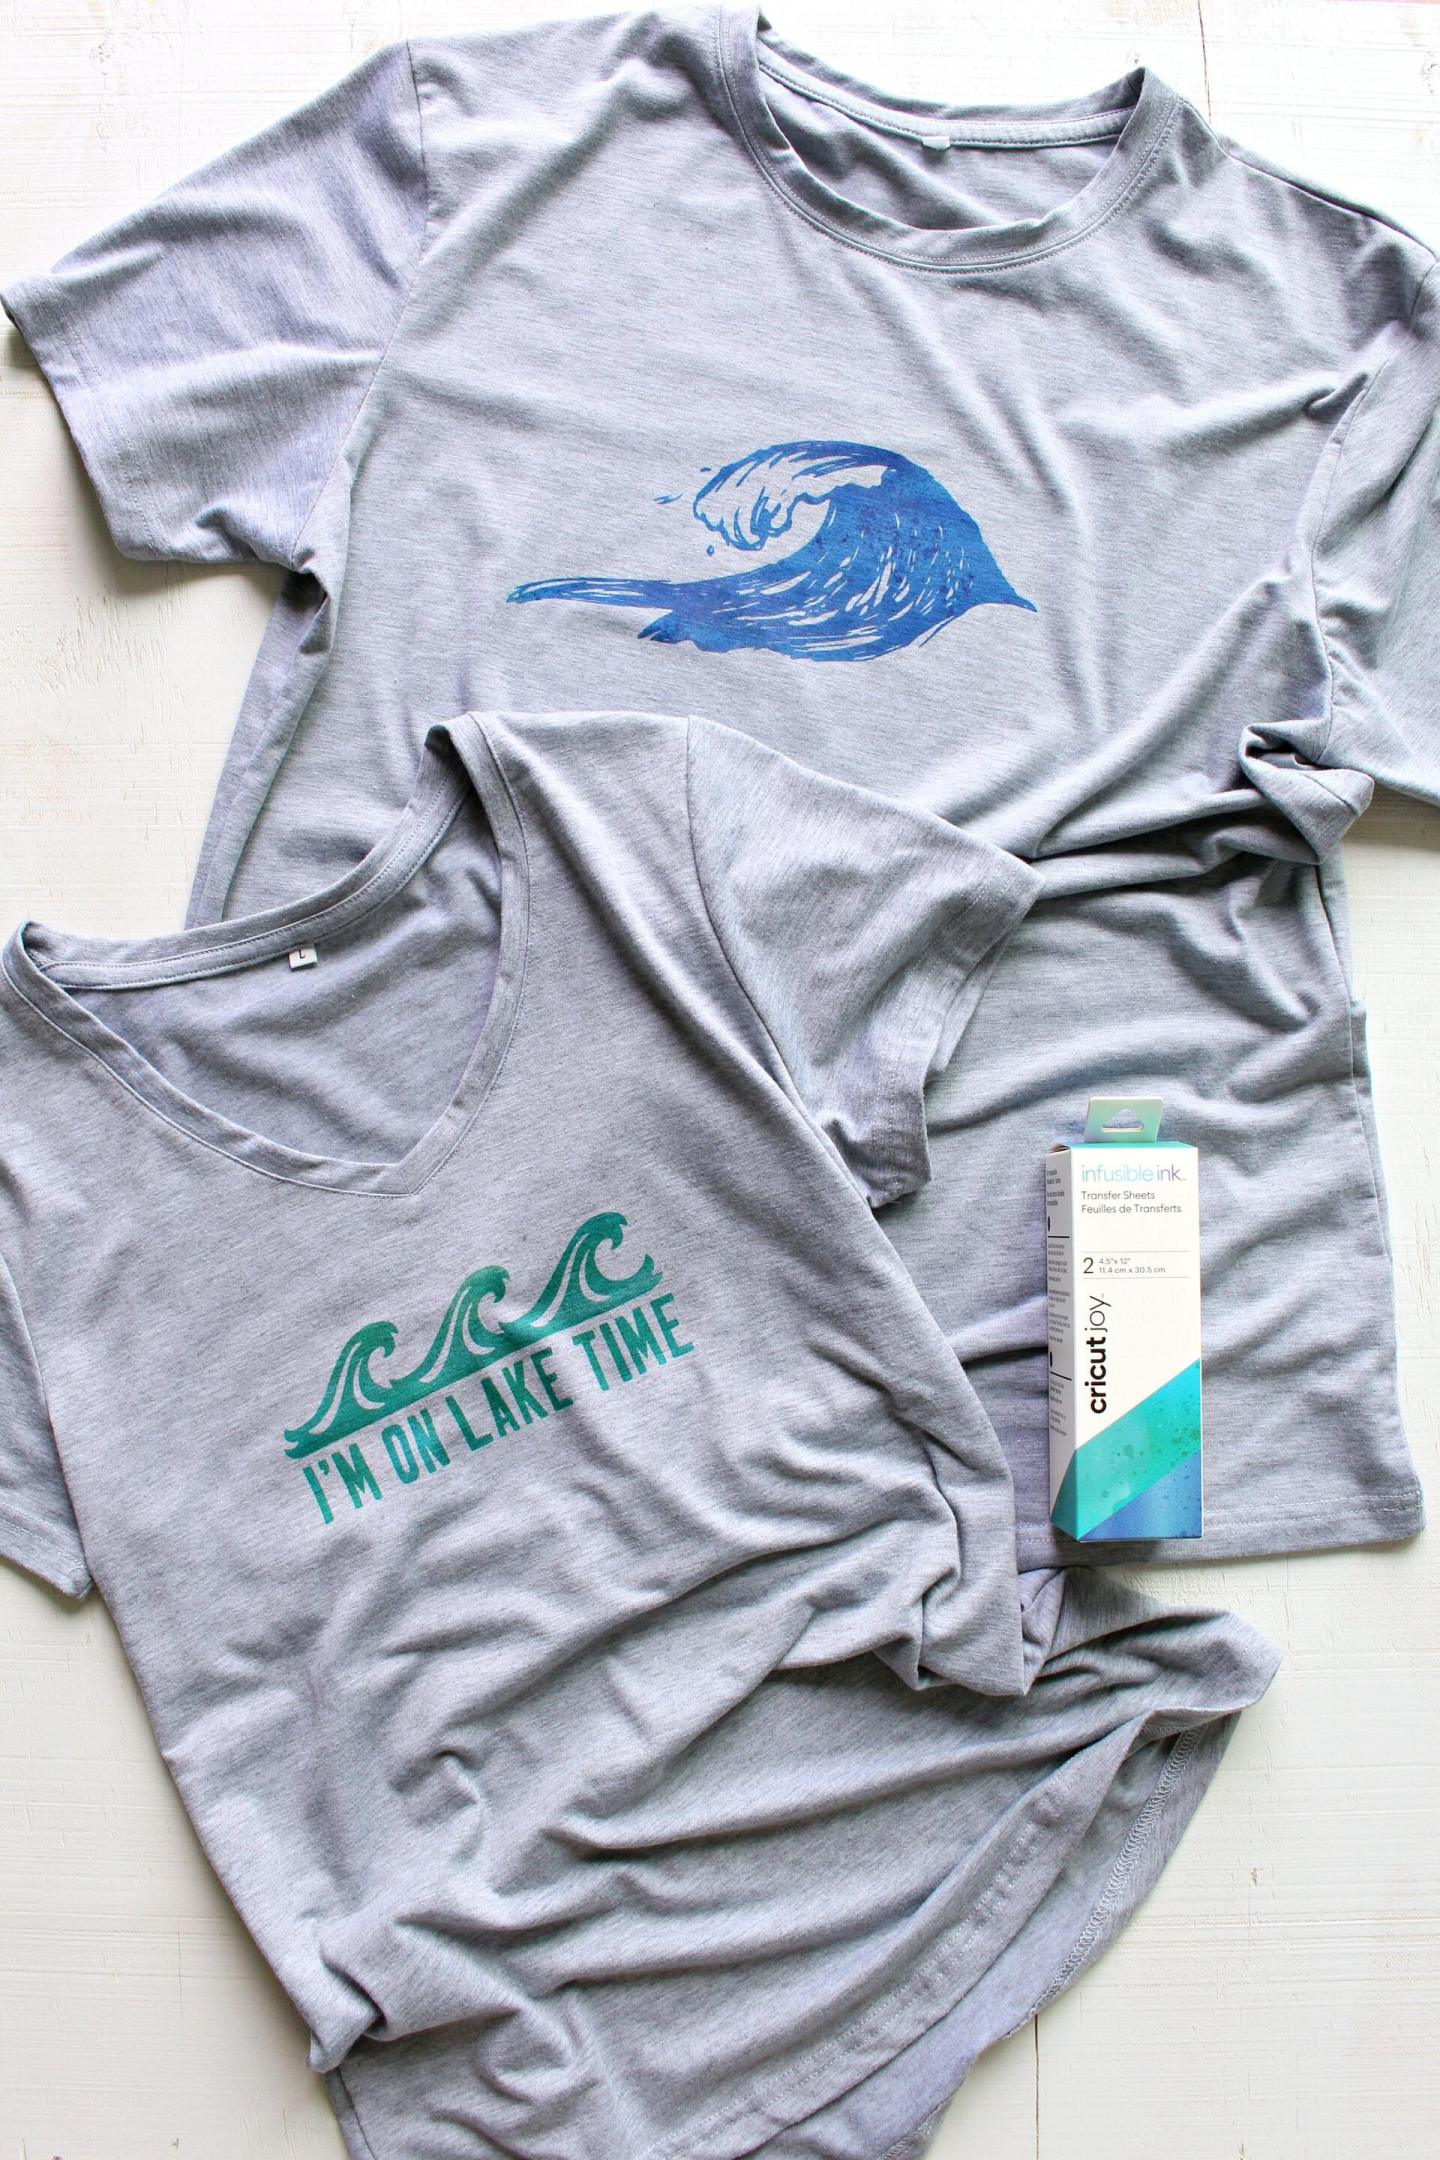 Cricut Joy infusible Ink T-Shirts